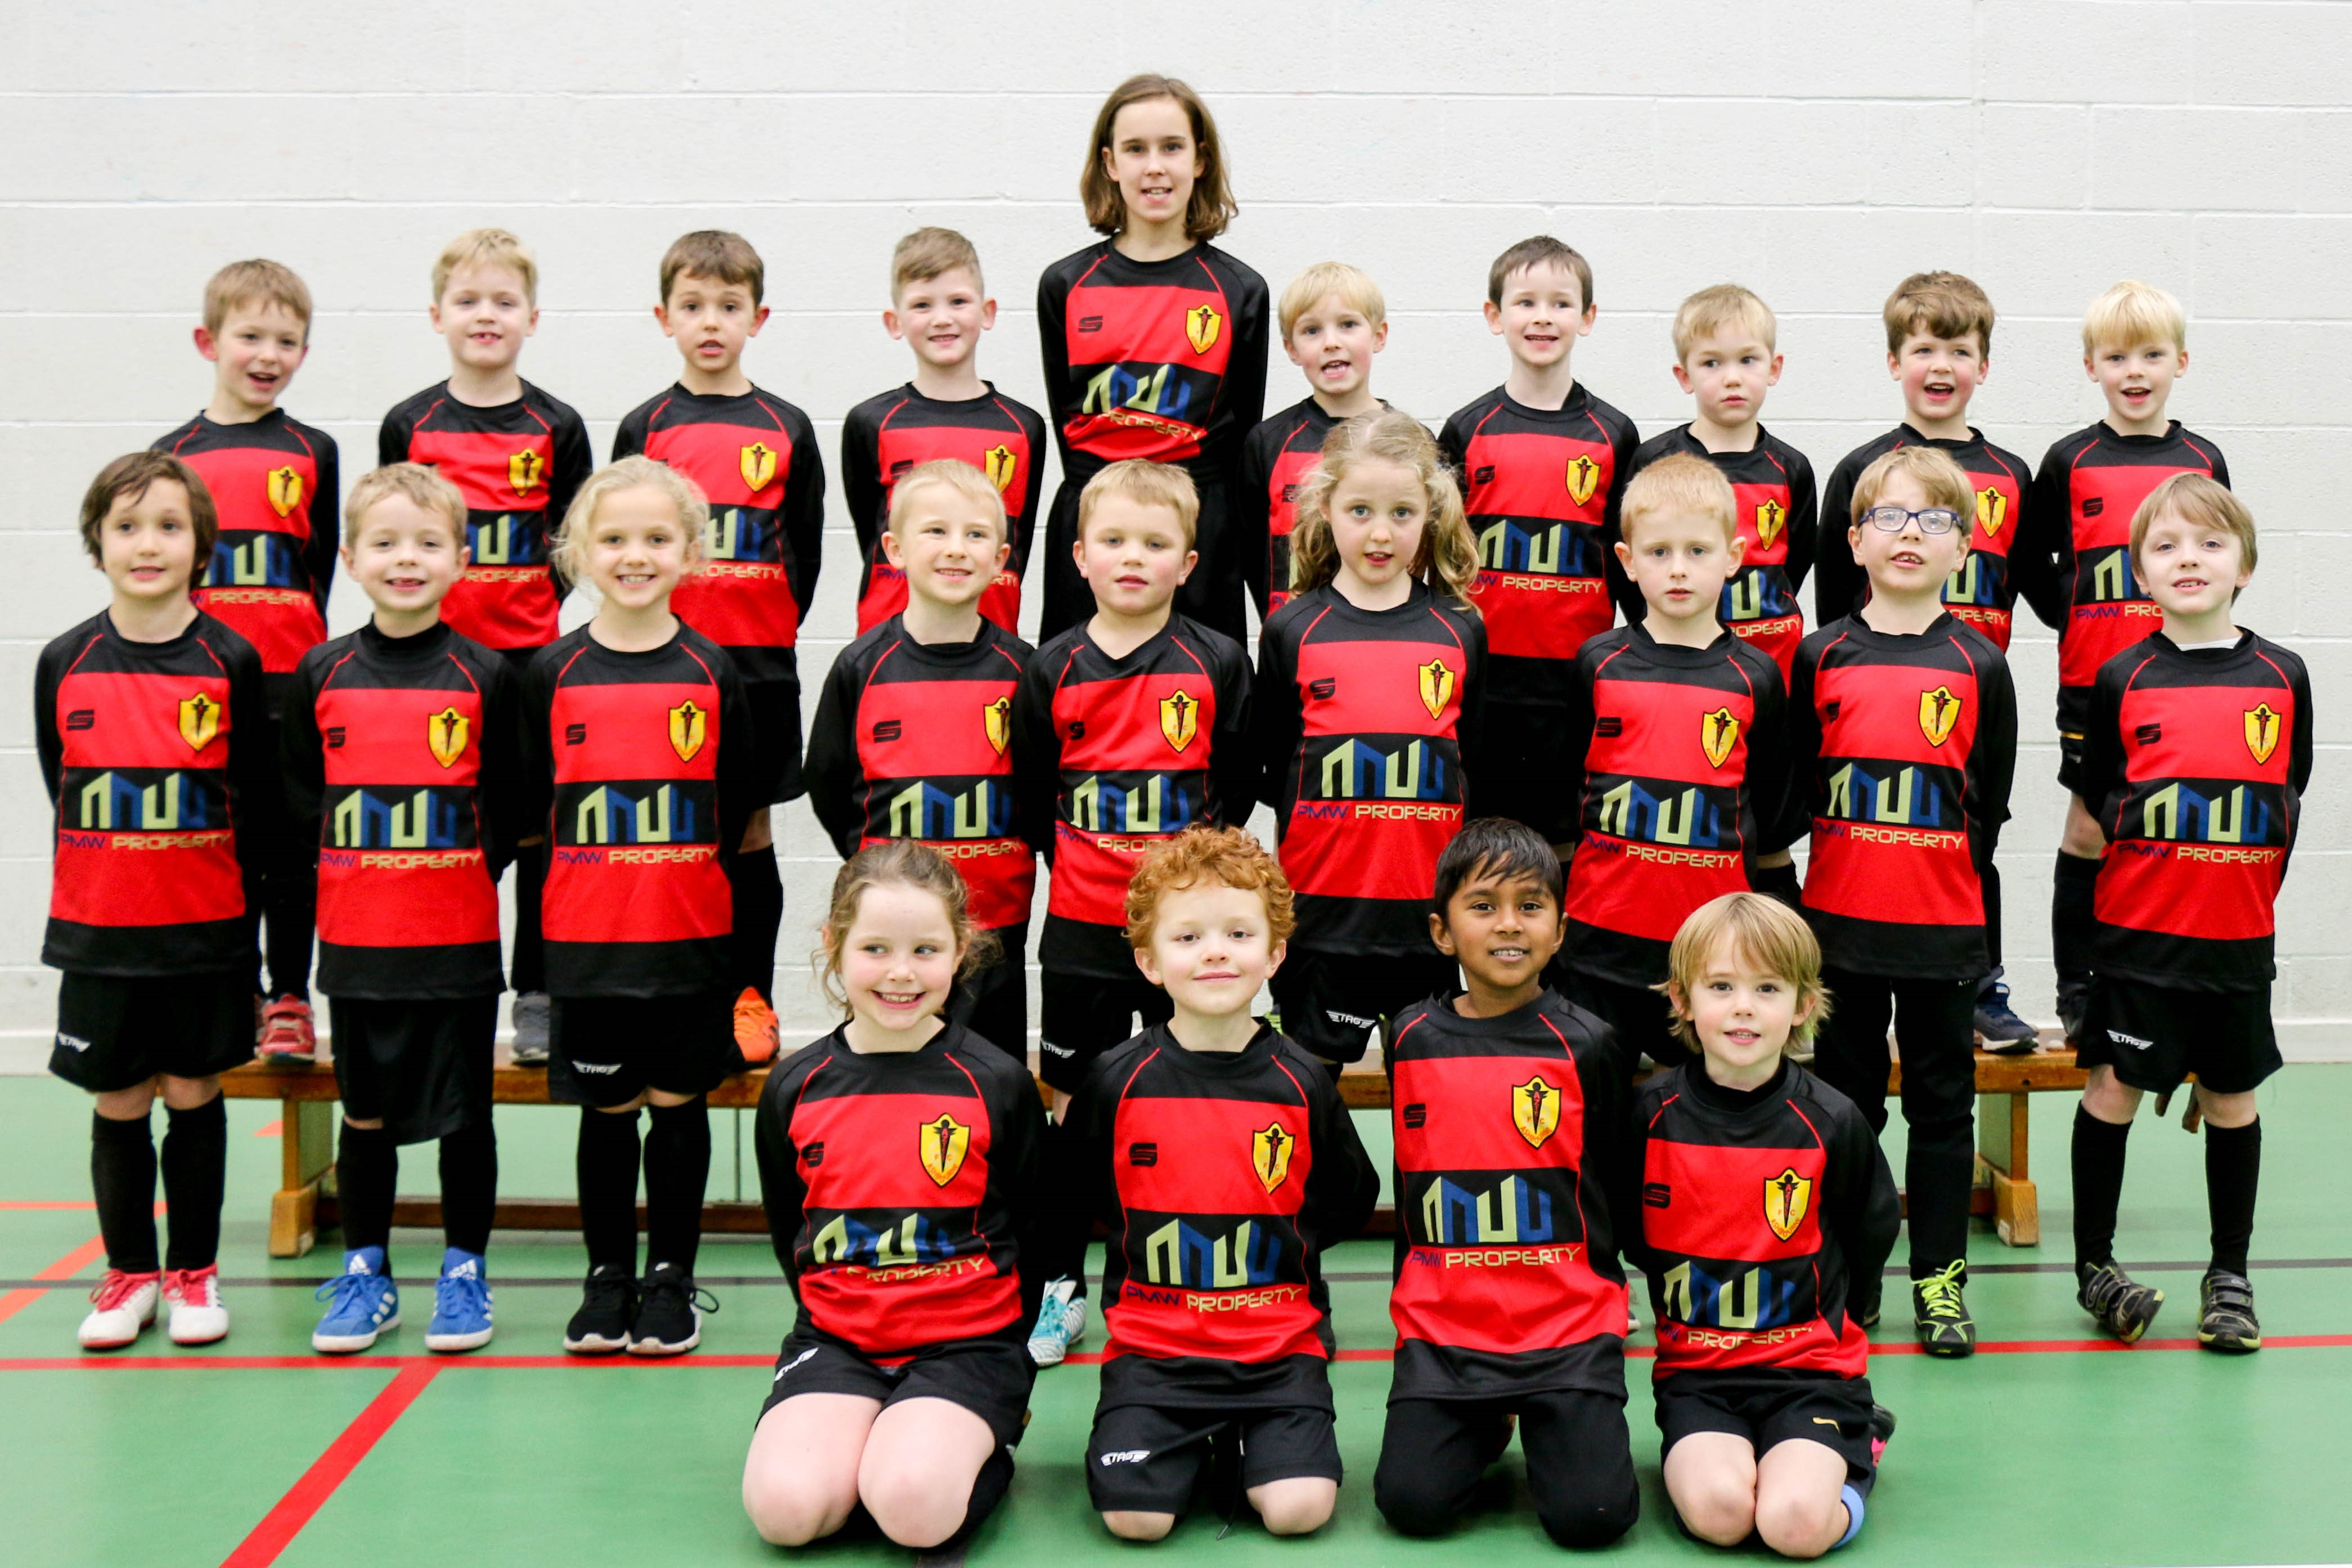 PMW PROPERTY SUPPORT LOCAL ASHBOURNE AZTECS JUNIOR FOOTBALL CLUB main image